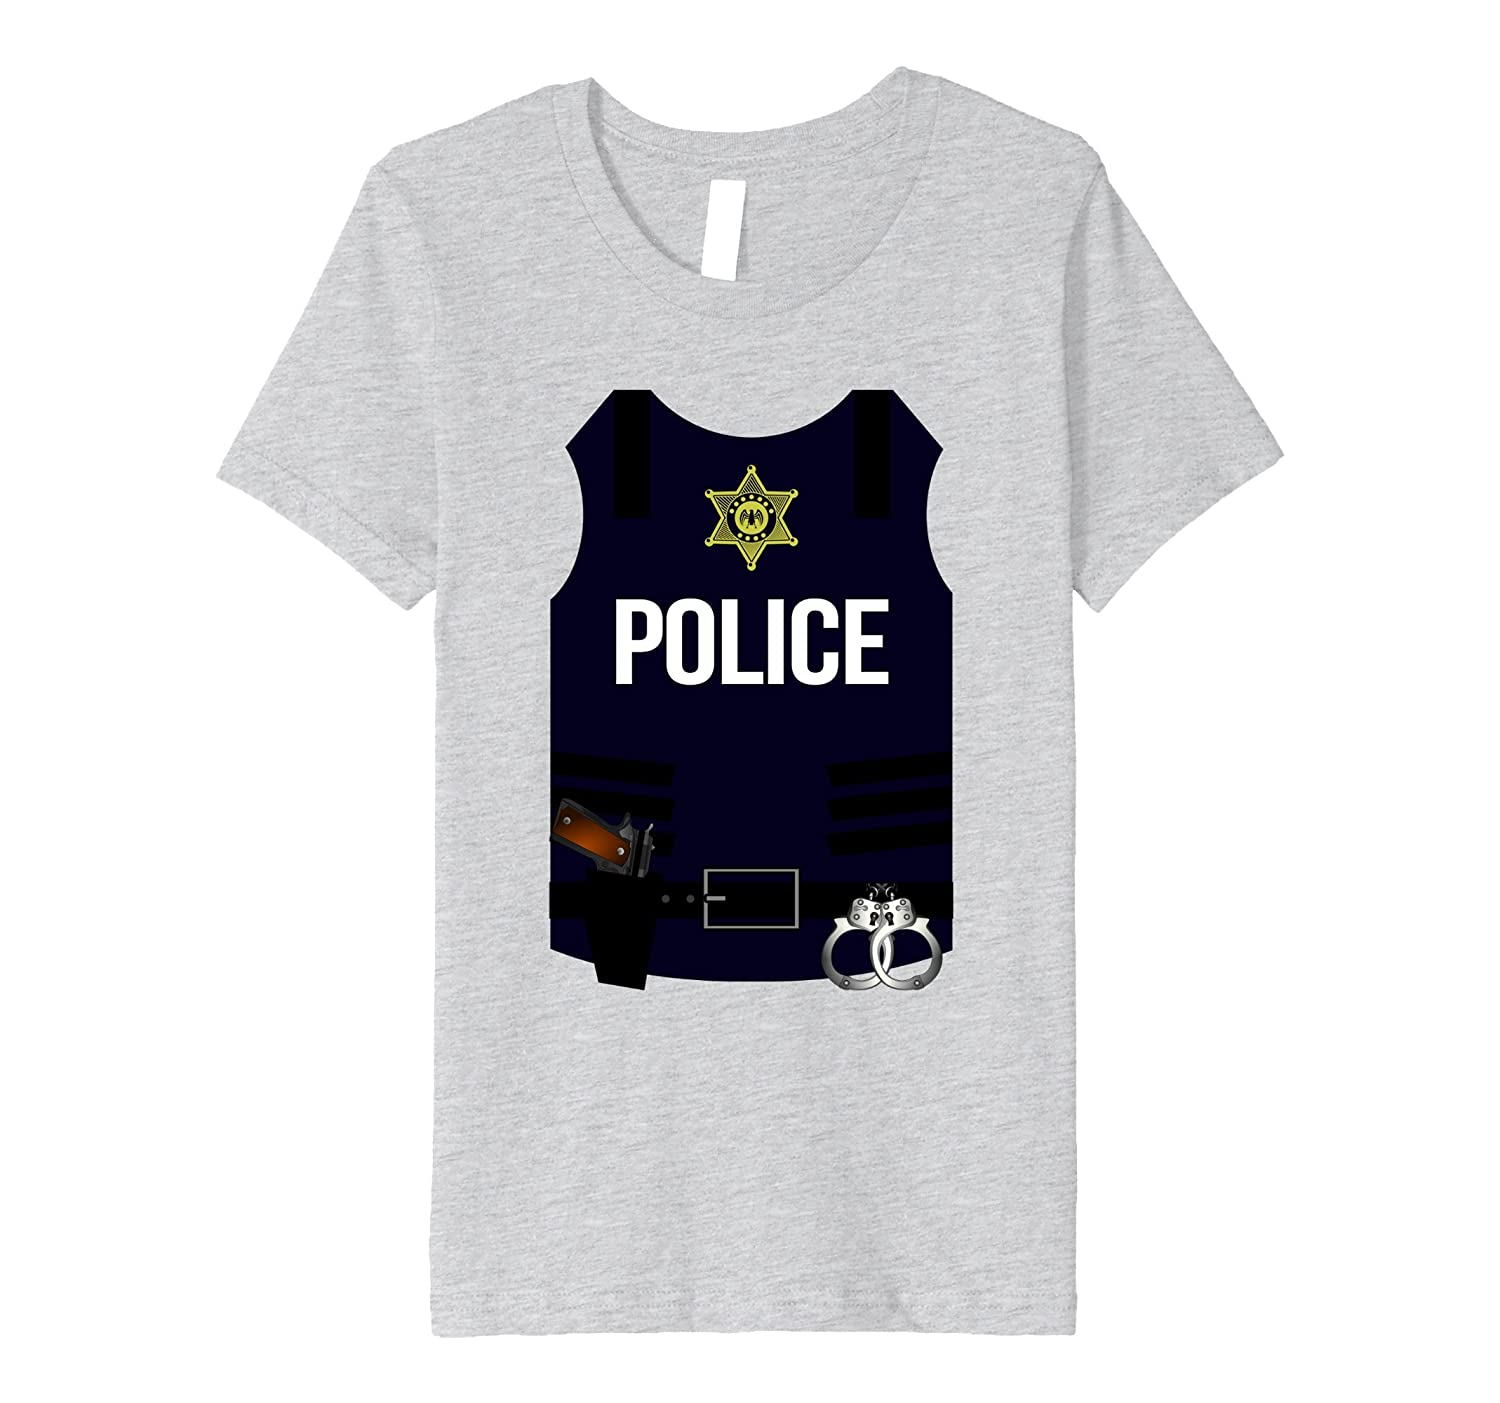 Police Vest Halloween Costume Shirt - SWAT Men Women Youth